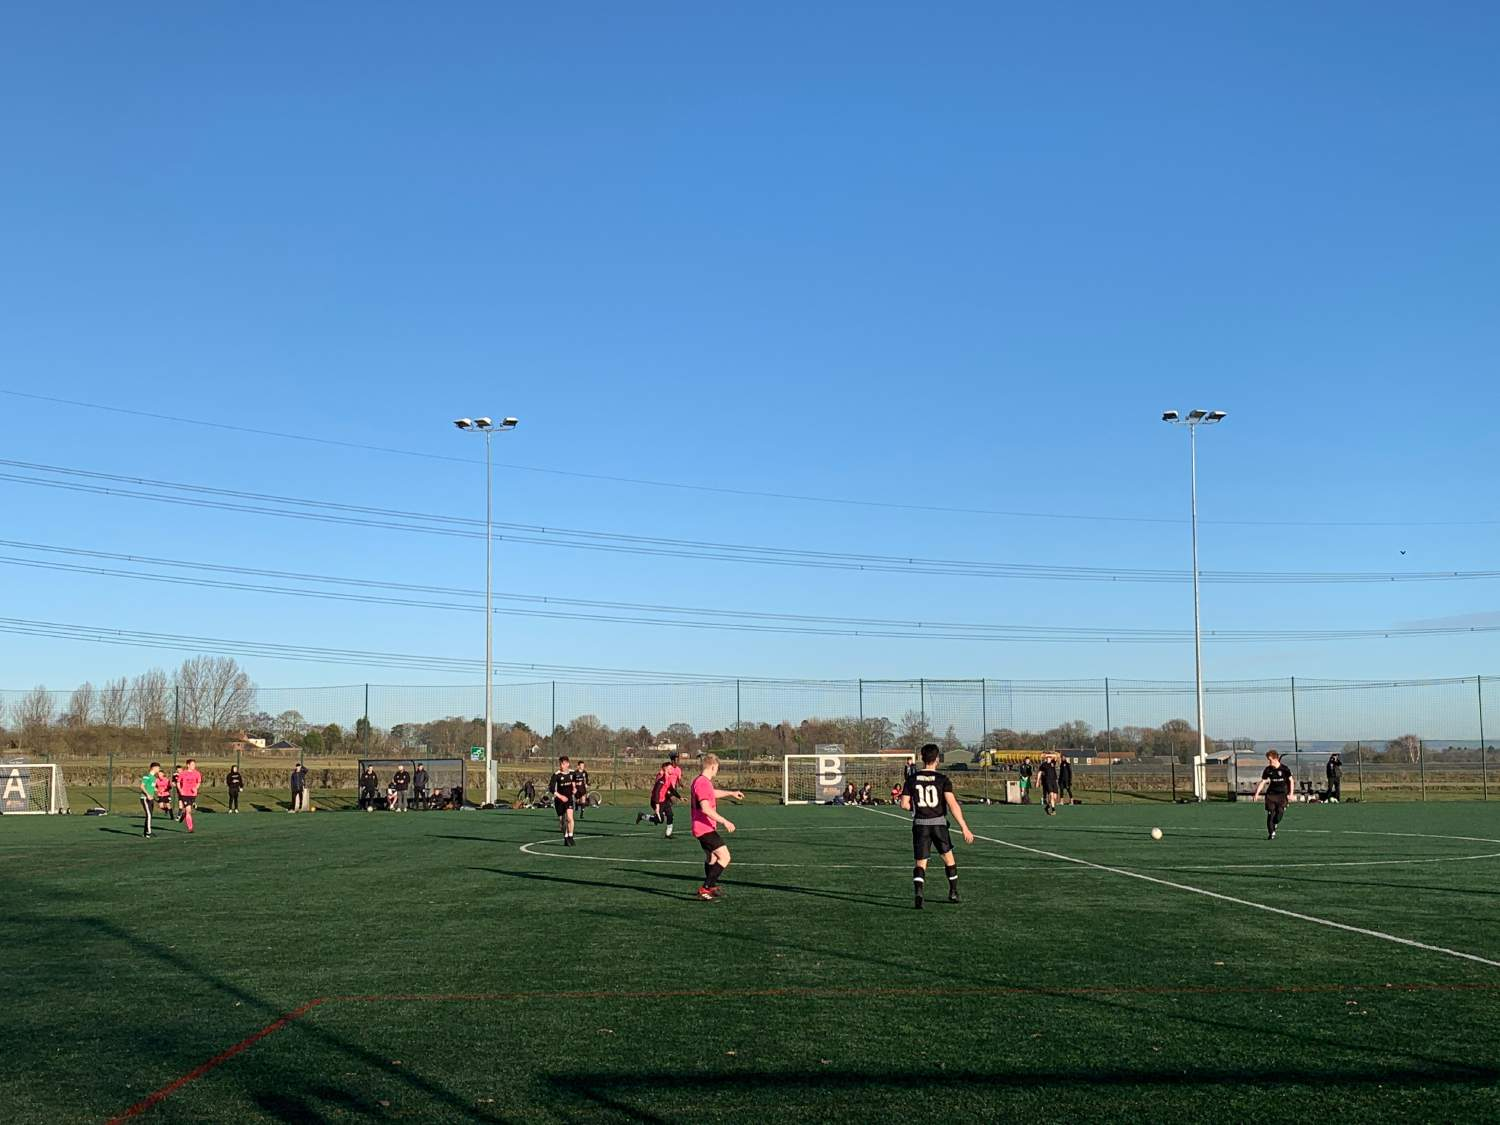 JCFC and CAFC draw in first game of Spring Term